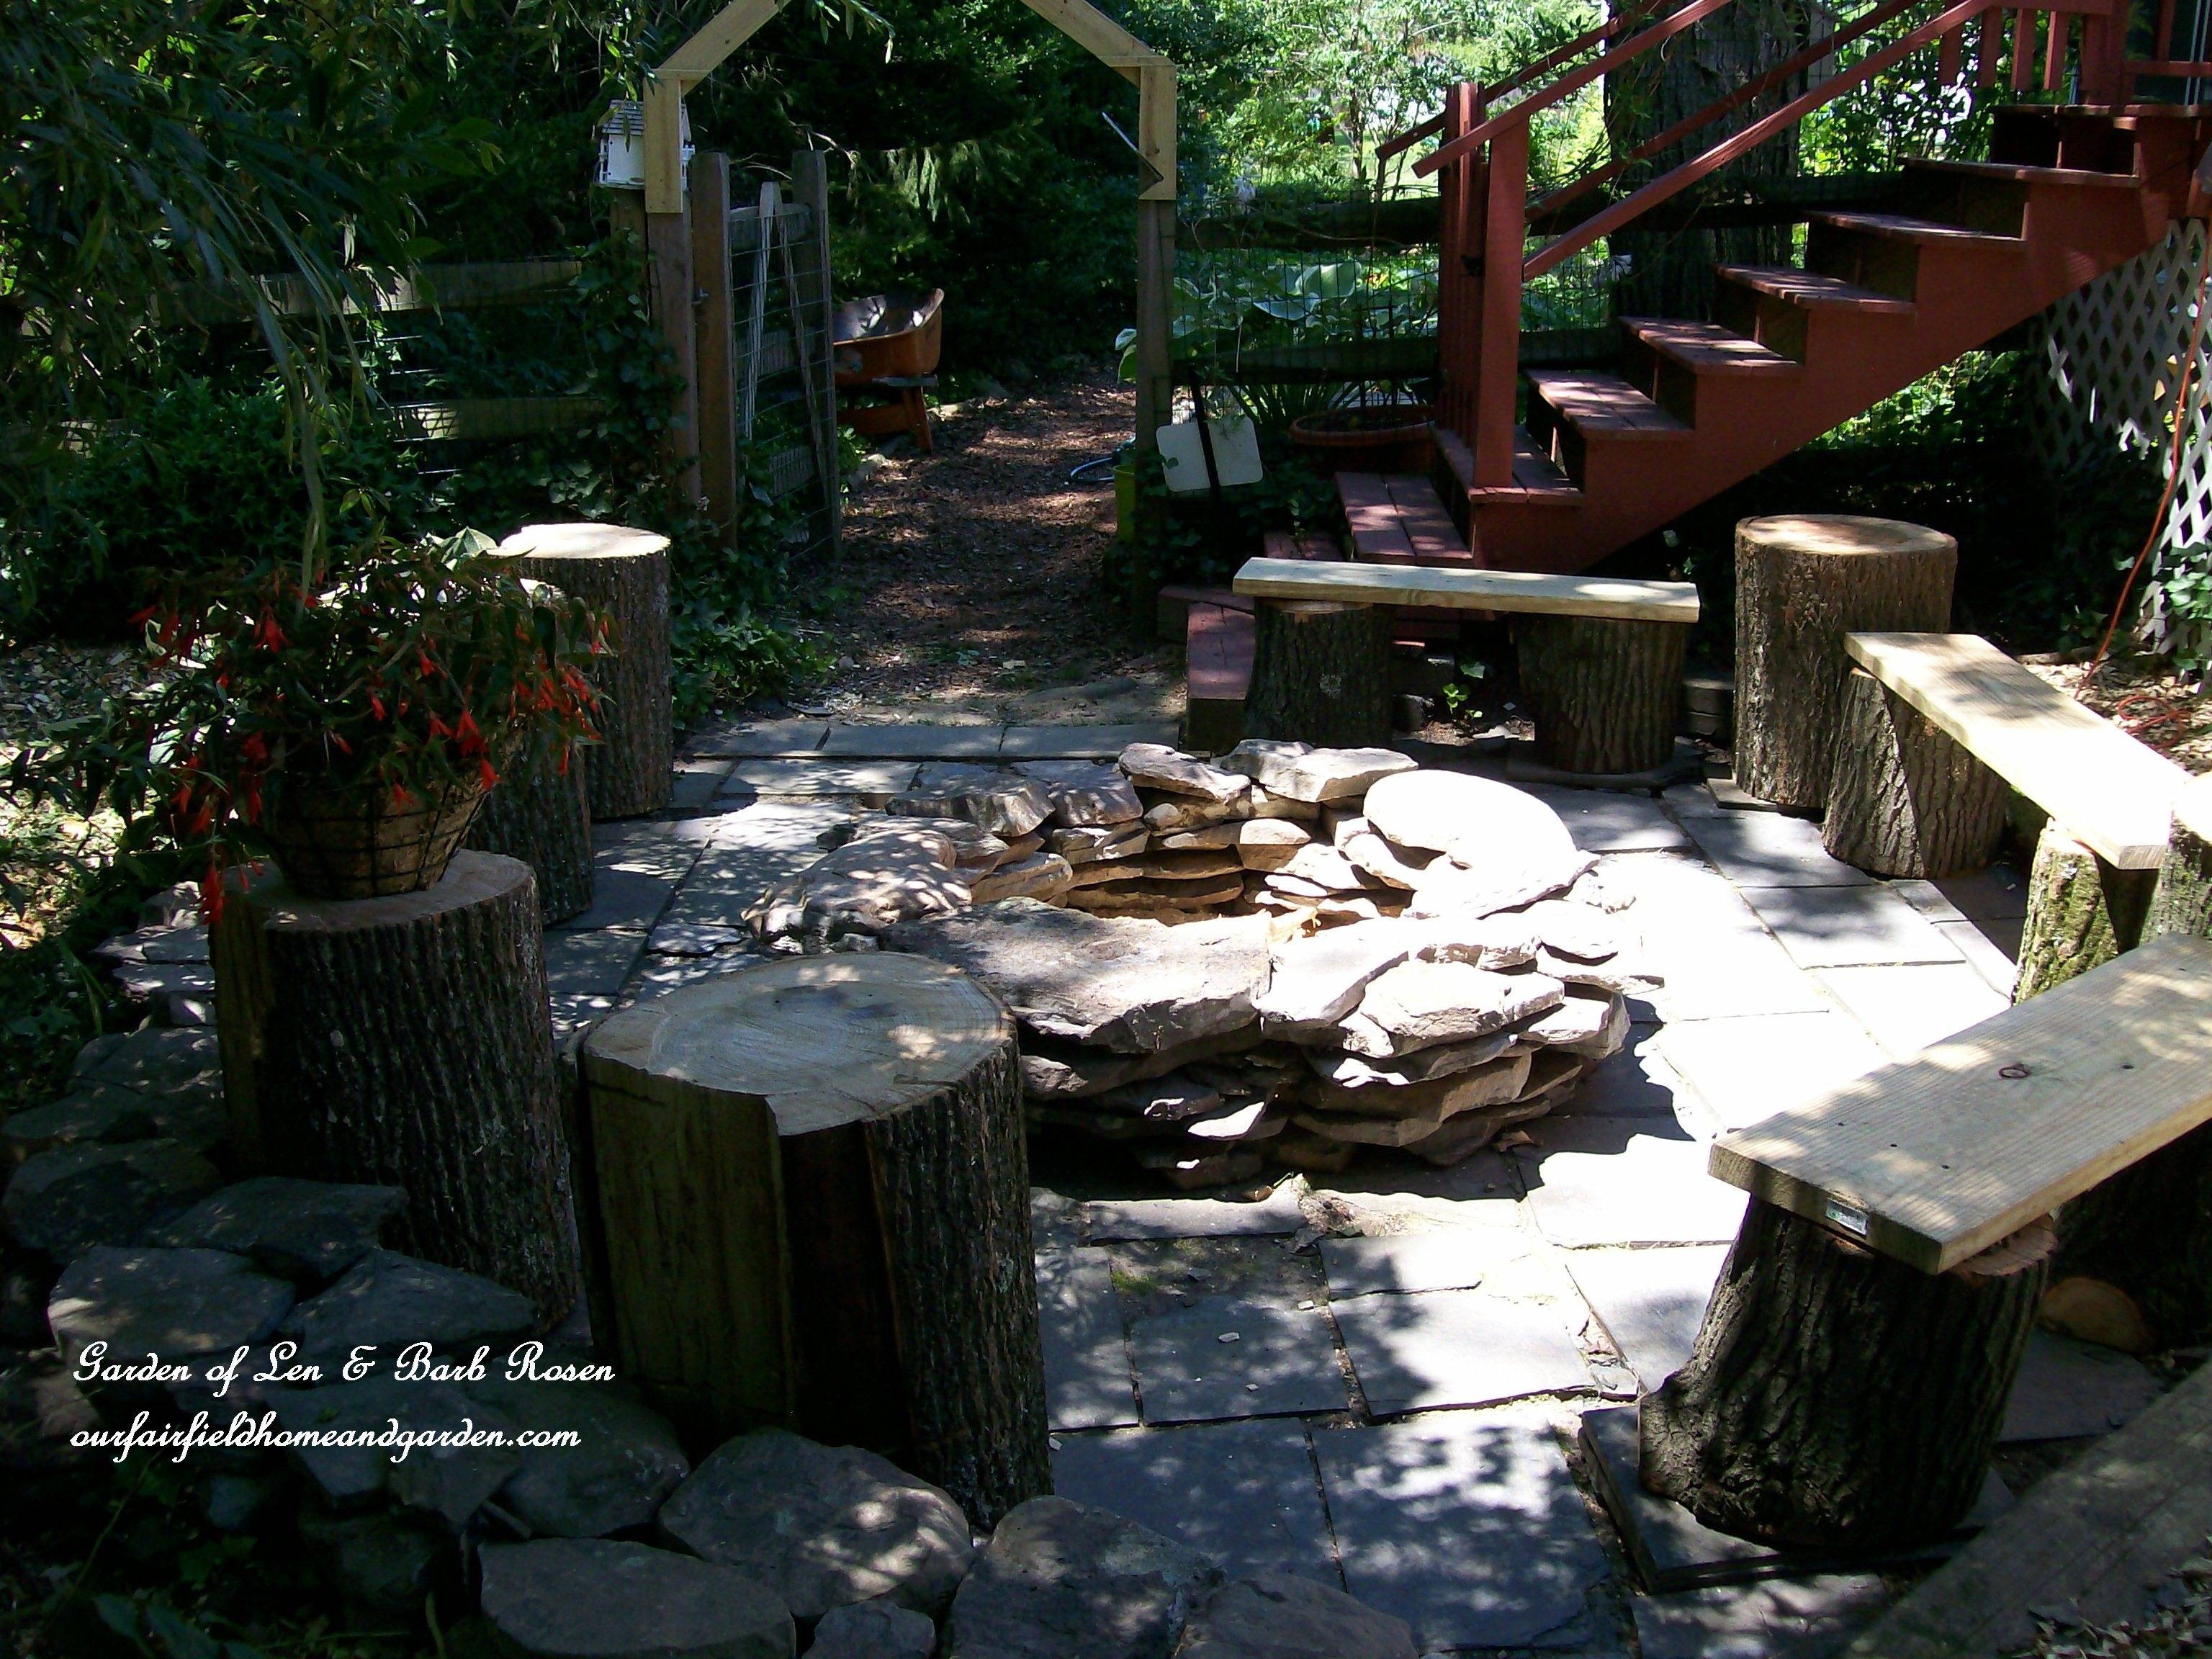 The camp rosen firepit diy project our fairfield home for Fire pit project